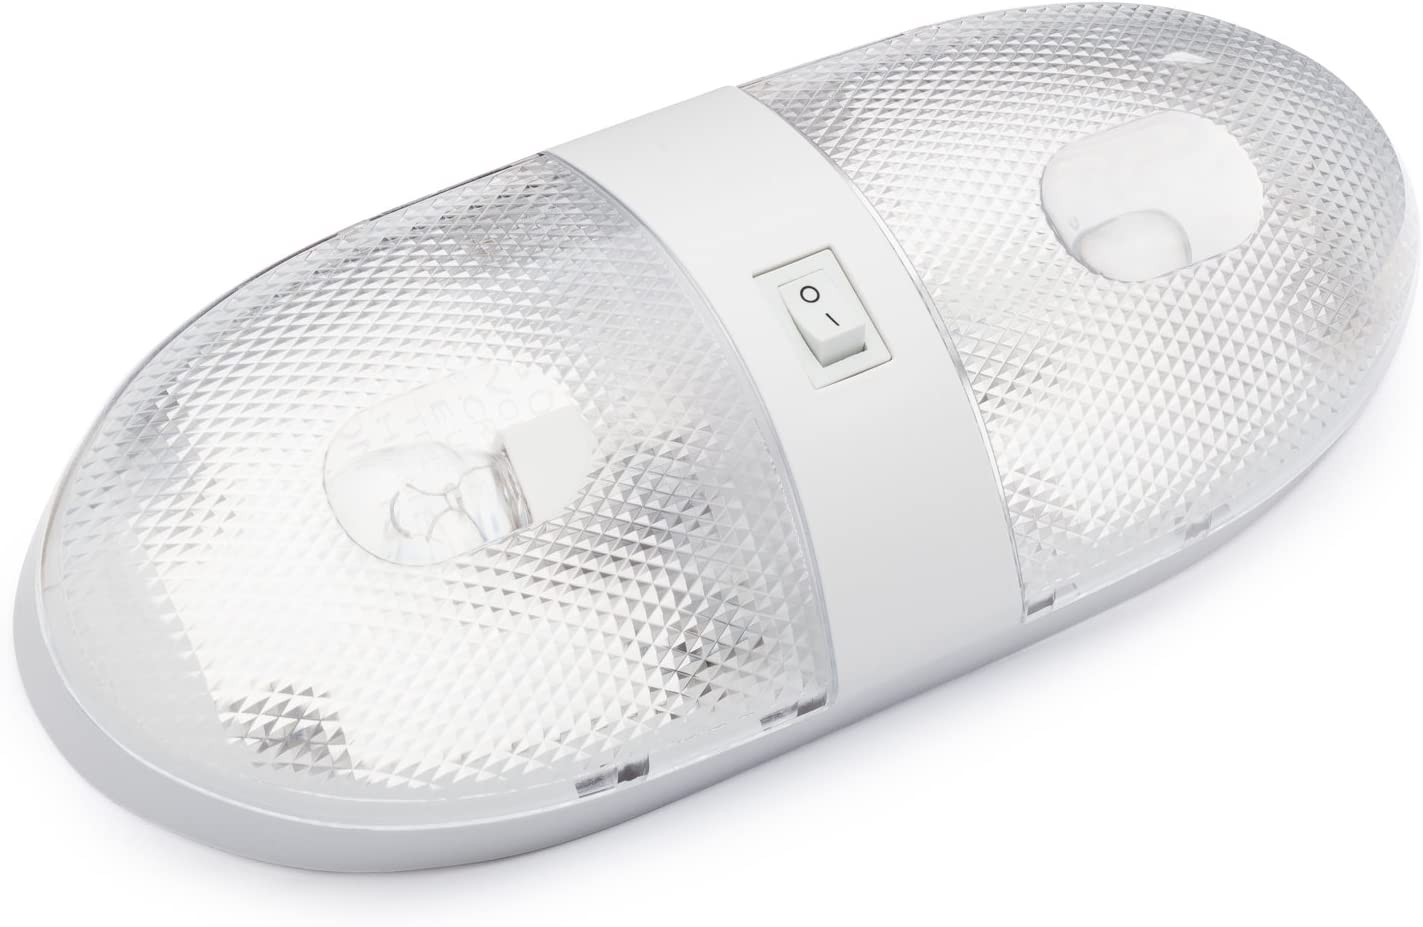 Motorhomes Campers Lumitronics Double RV Ceiling Dome Light with On//Off Switch and Removable Lenses Perfect Interior Replacement 12V Lighting for RVs 5th Wheels Trailers.